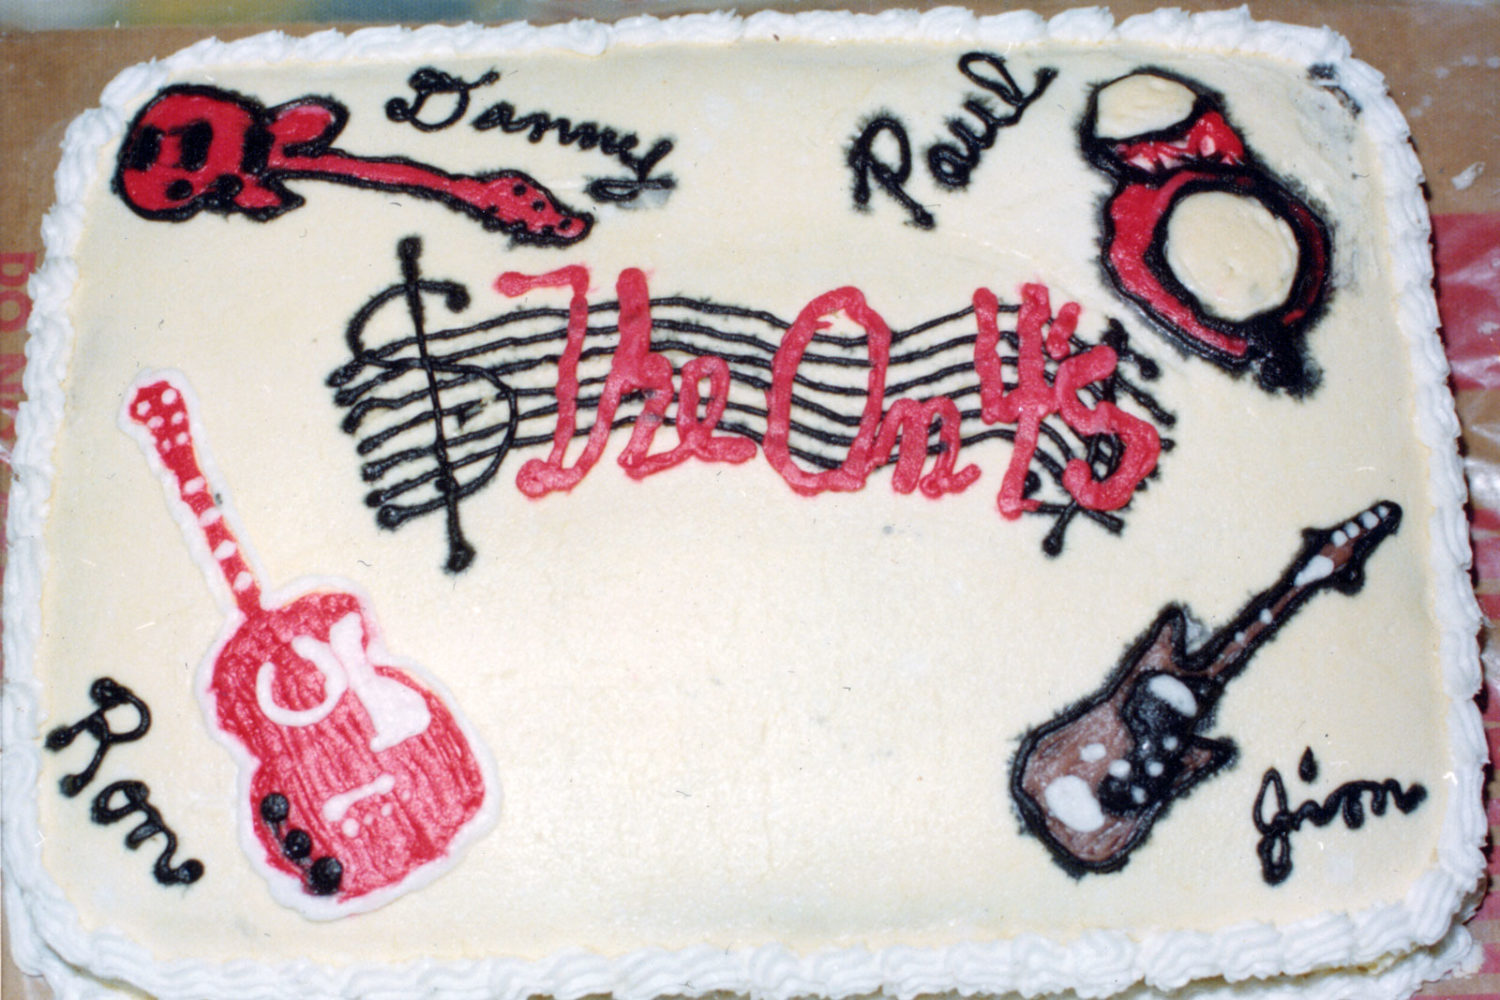 On Fours birthday cake